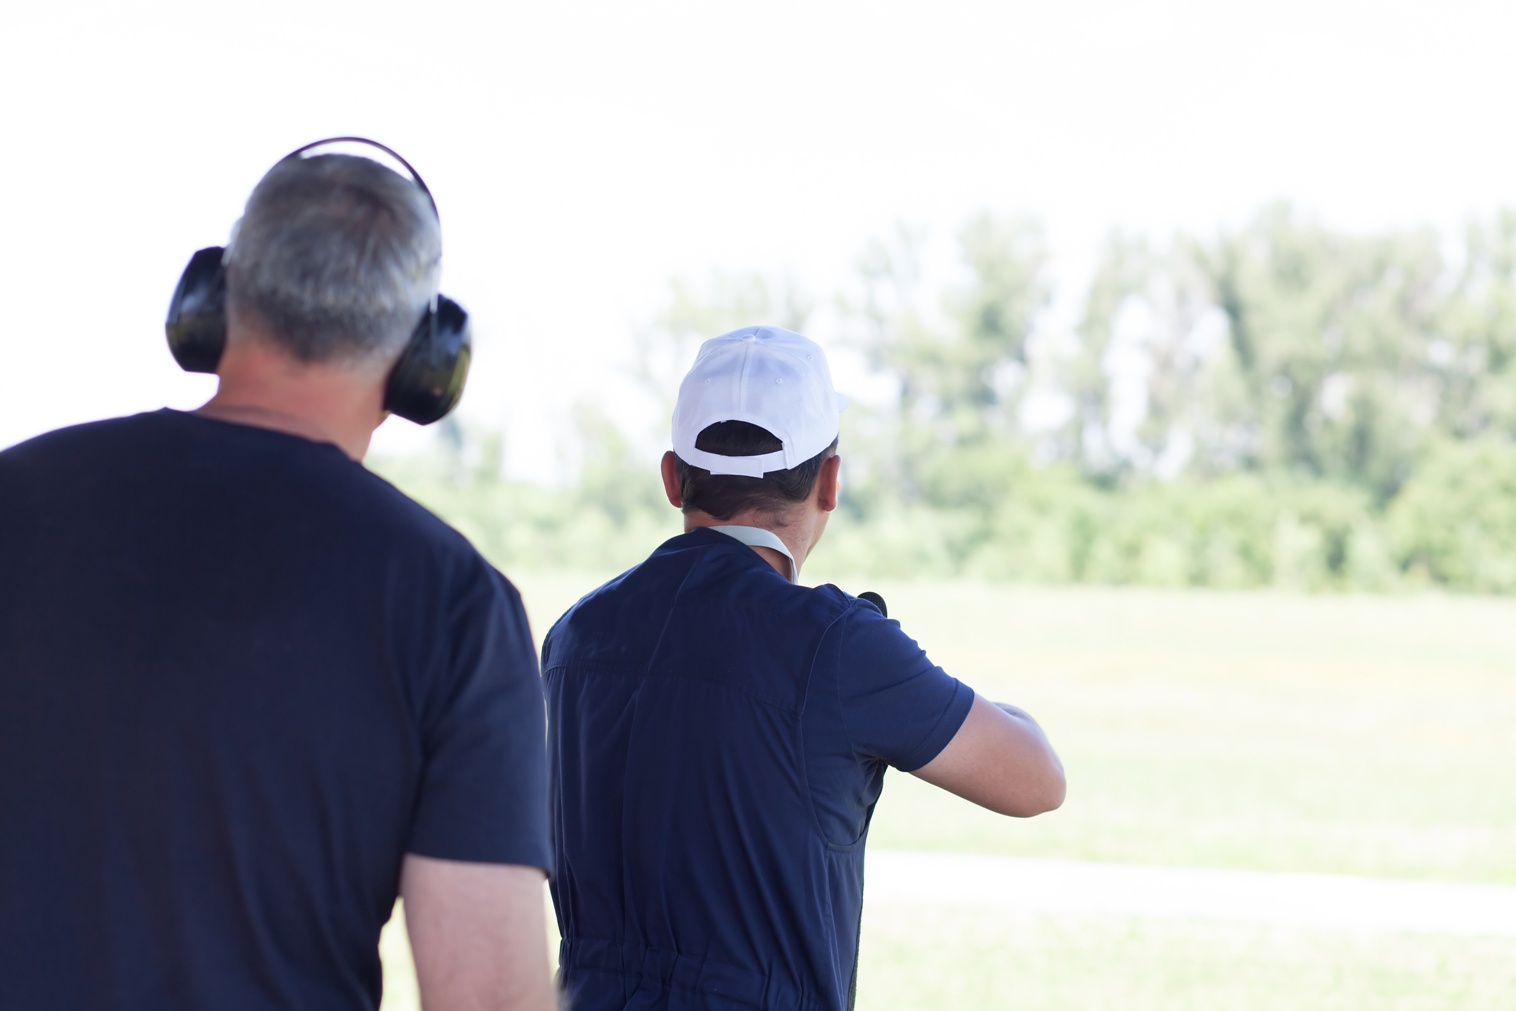 Considerations In Becoming a Firearm Instructor ...